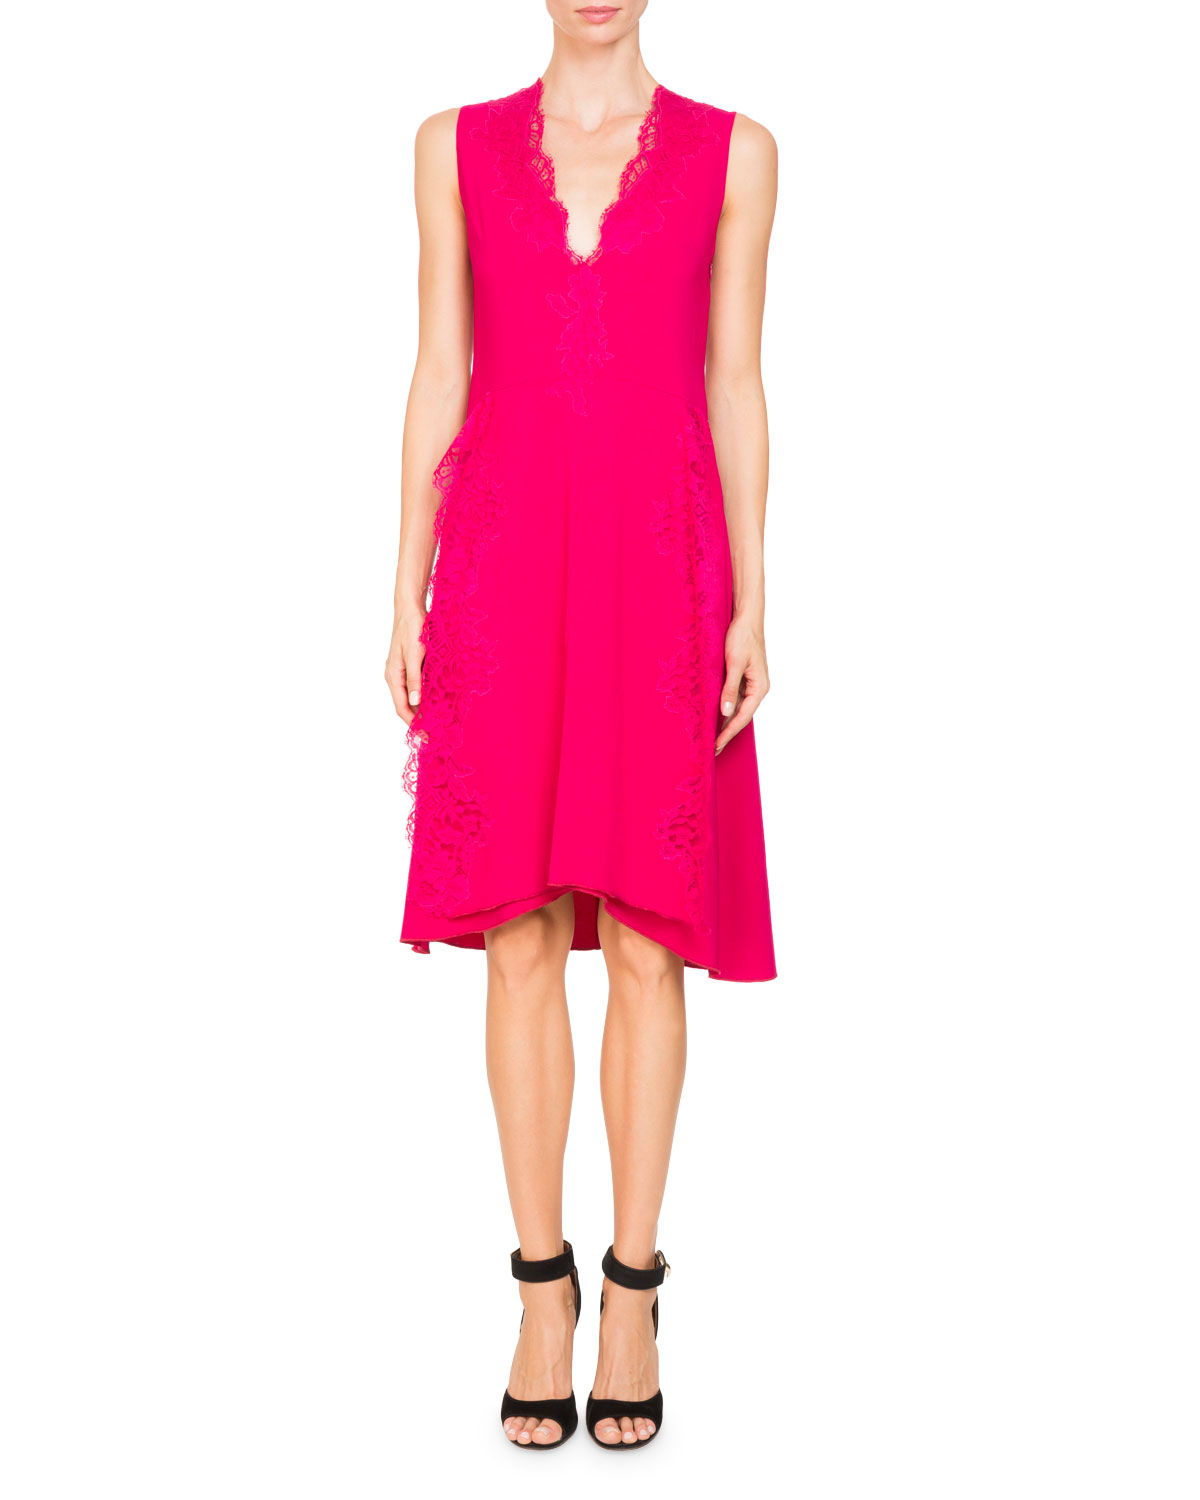 V-Neck Sleeveless Stretch-Cady Cocktail Dress with Lace